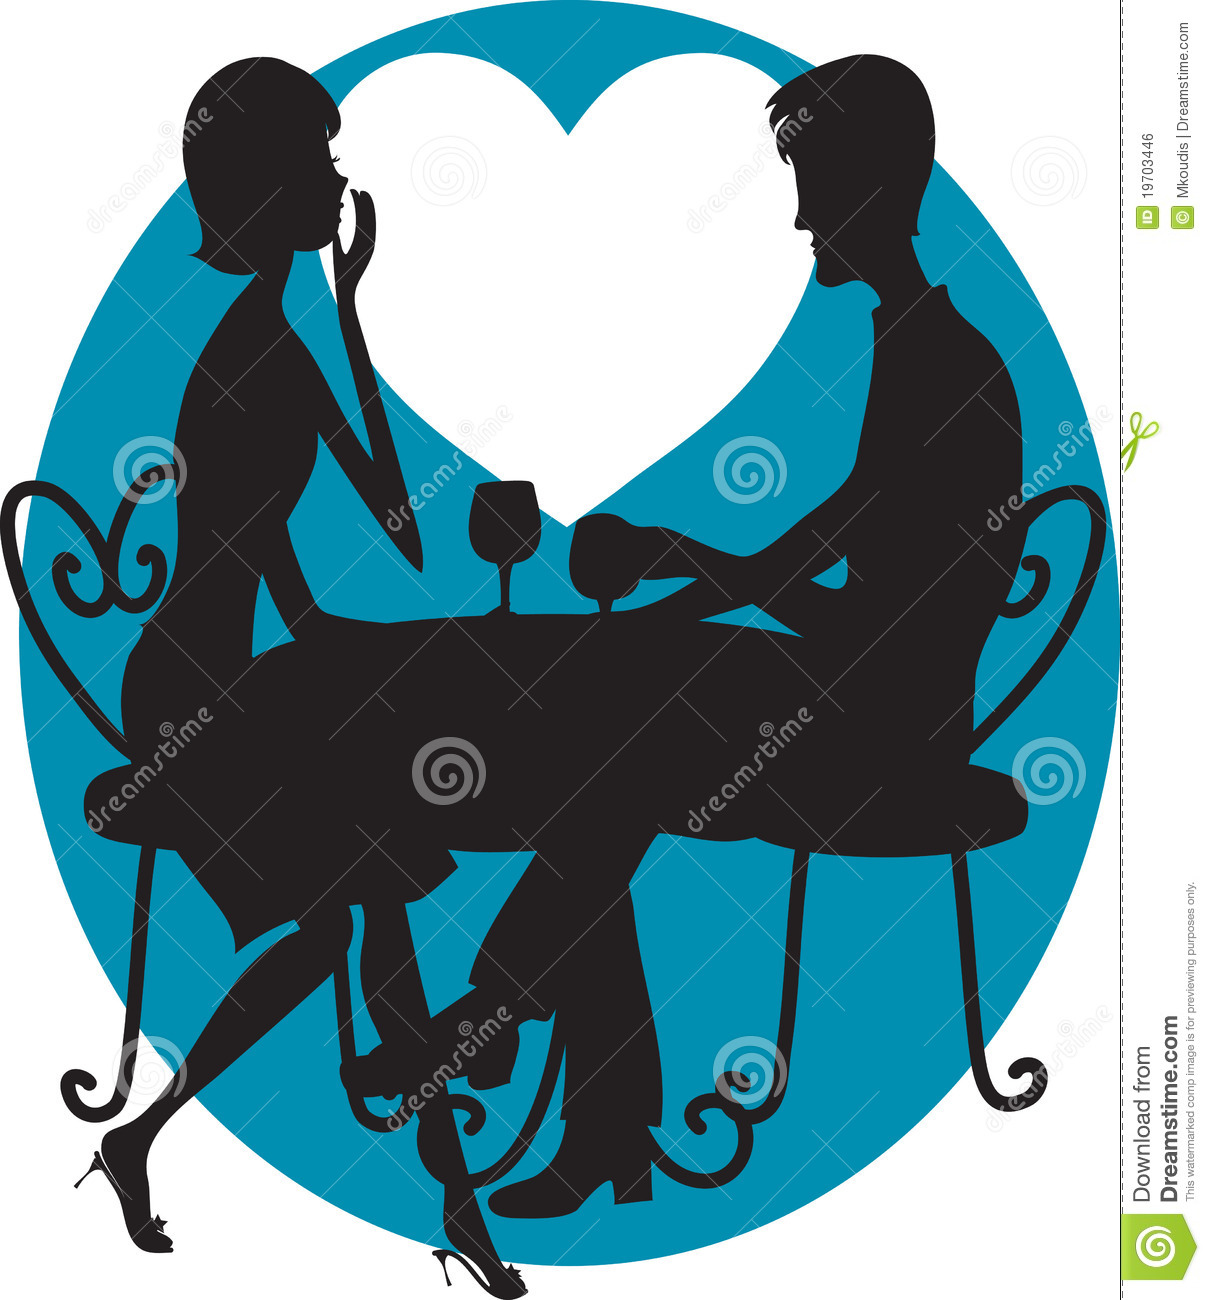 Night Table Clipart Romantic Couple Silhouette Stock Vector Illustration Of